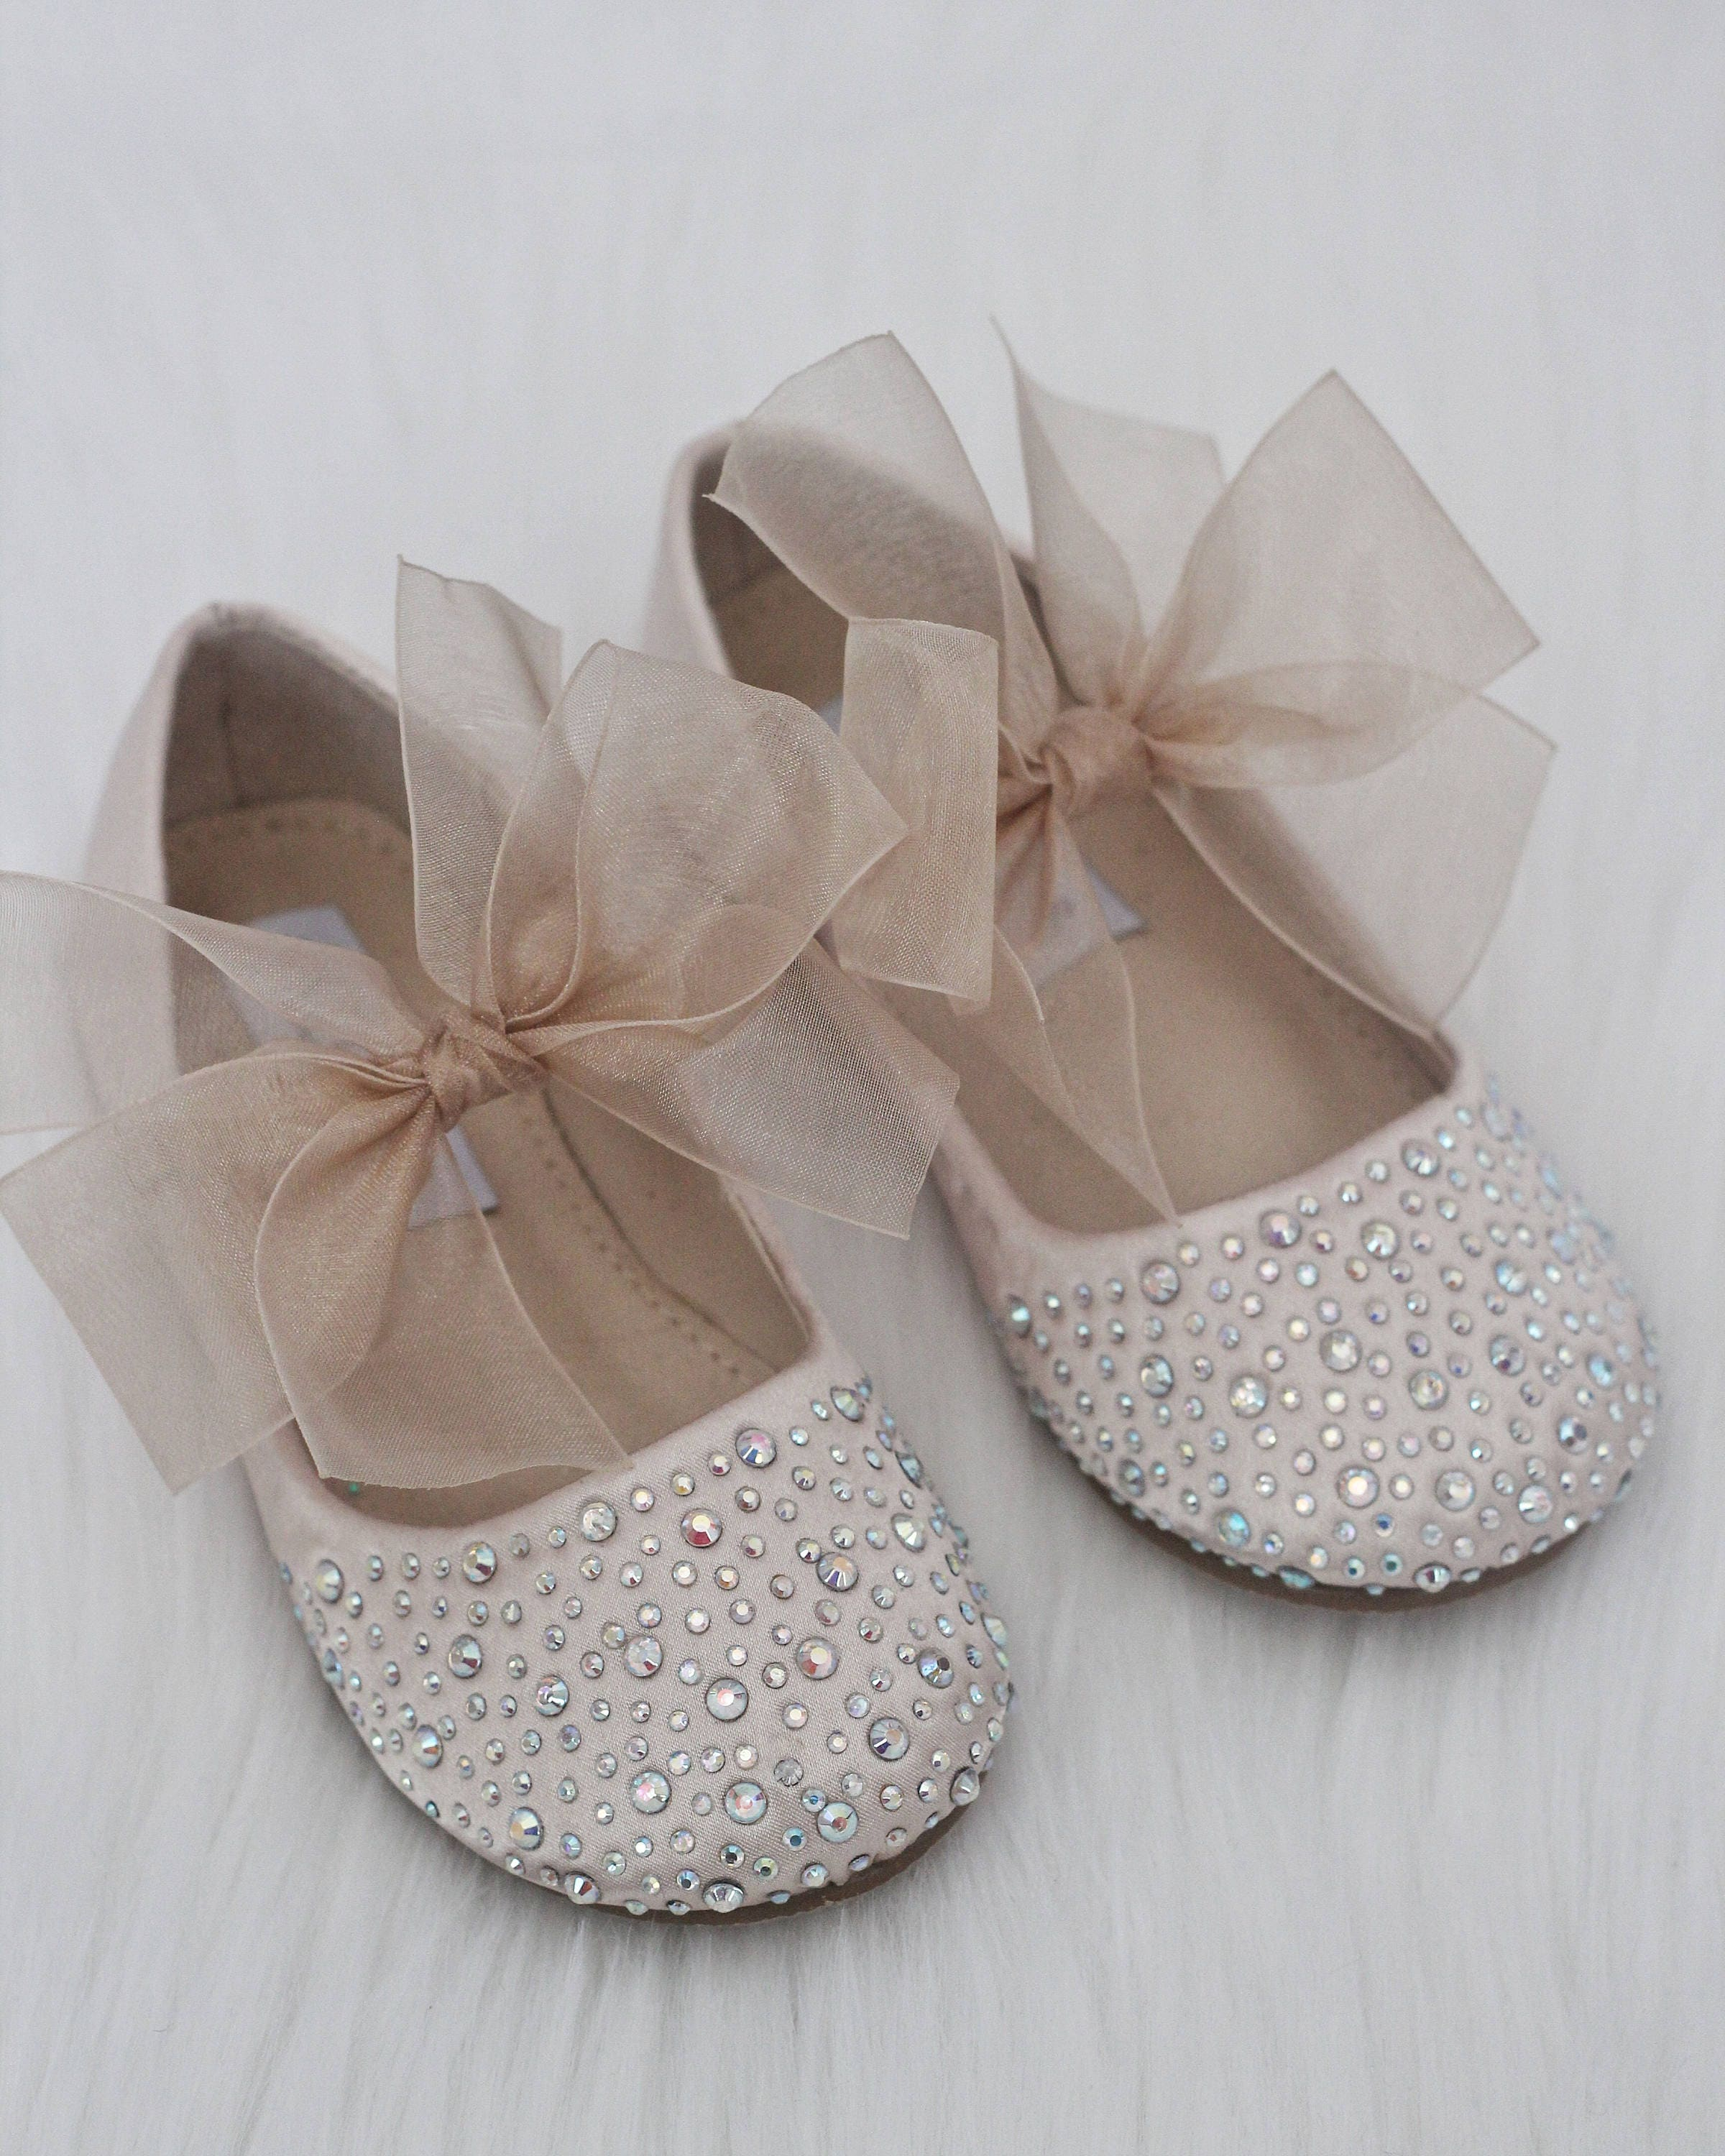 GIRLS SHOES CHAMPAGNE Satin With Rhinestone ballet flats with